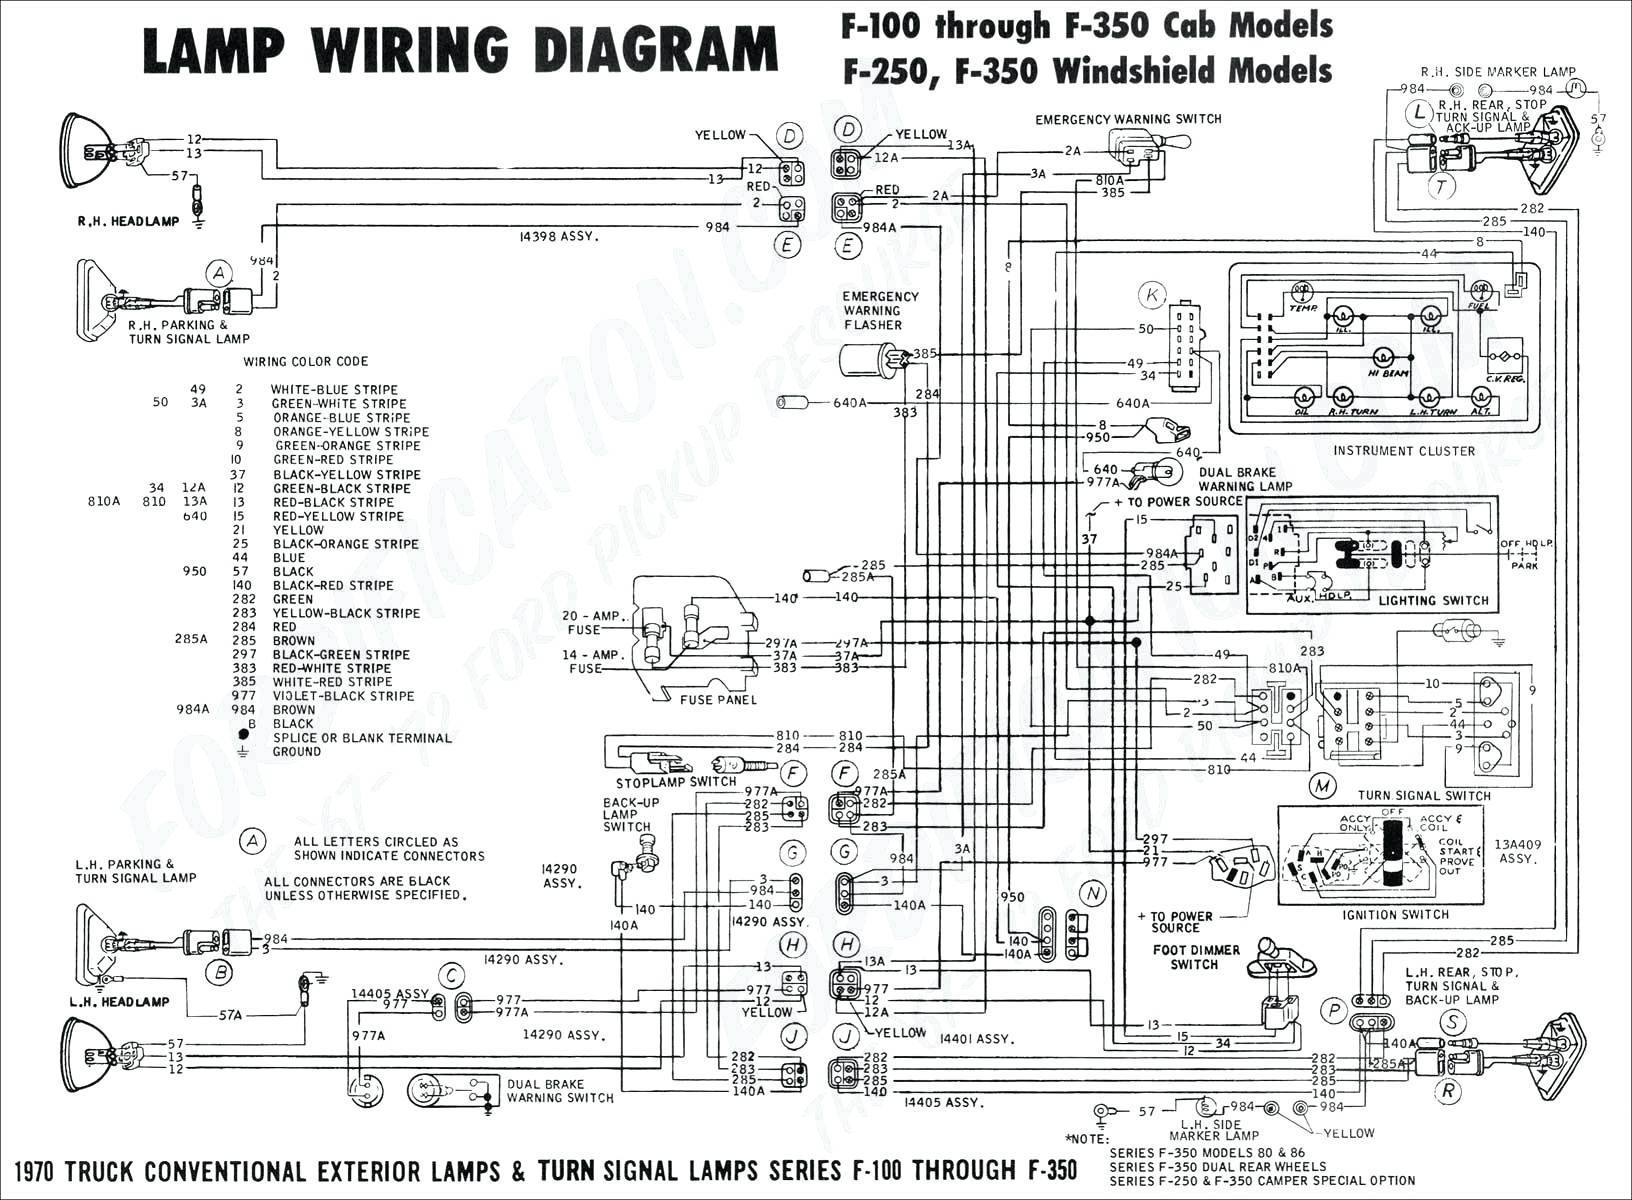 2002 Sebring Engine Diagram 2002 Sebring Fuse Box Wiring Diagram toolbox Of 2002 Sebring Engine Diagram 2002 Chrysler town and Country Transmission Wiring Wiring Diagram Used